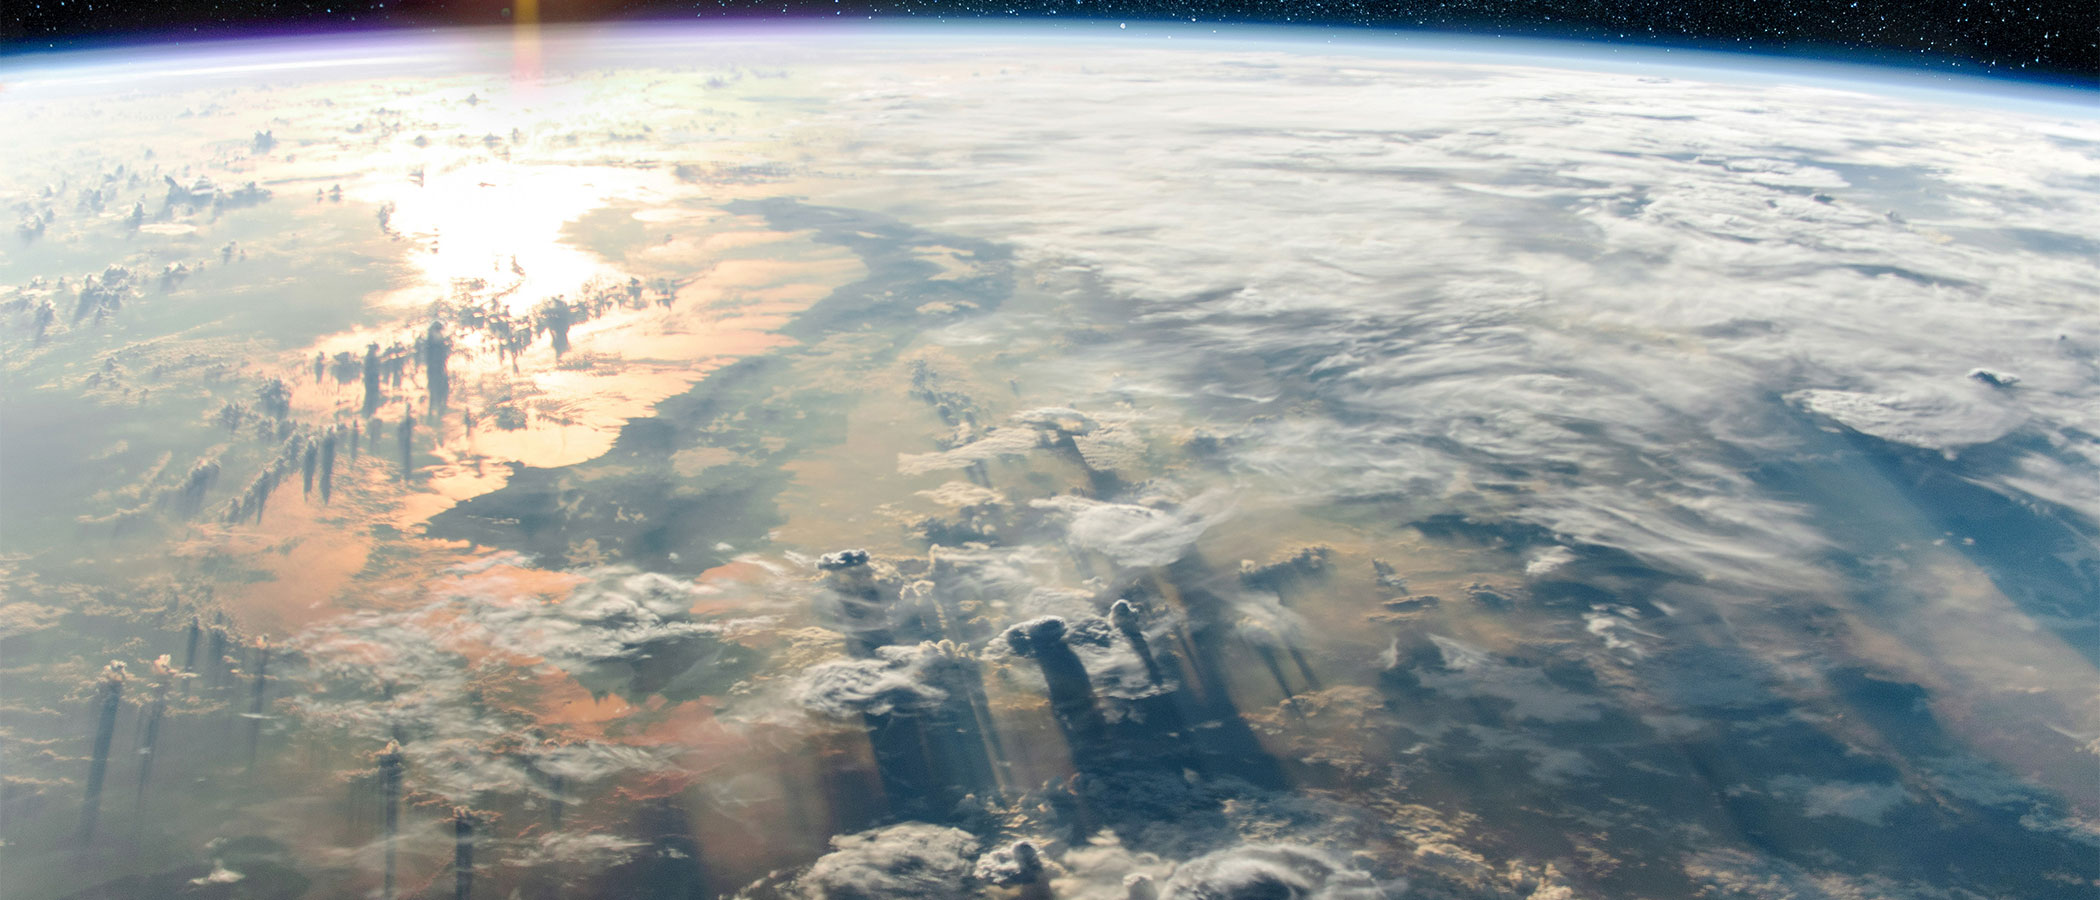 Swirling clouds in earth's atmosphere as viewed from space.